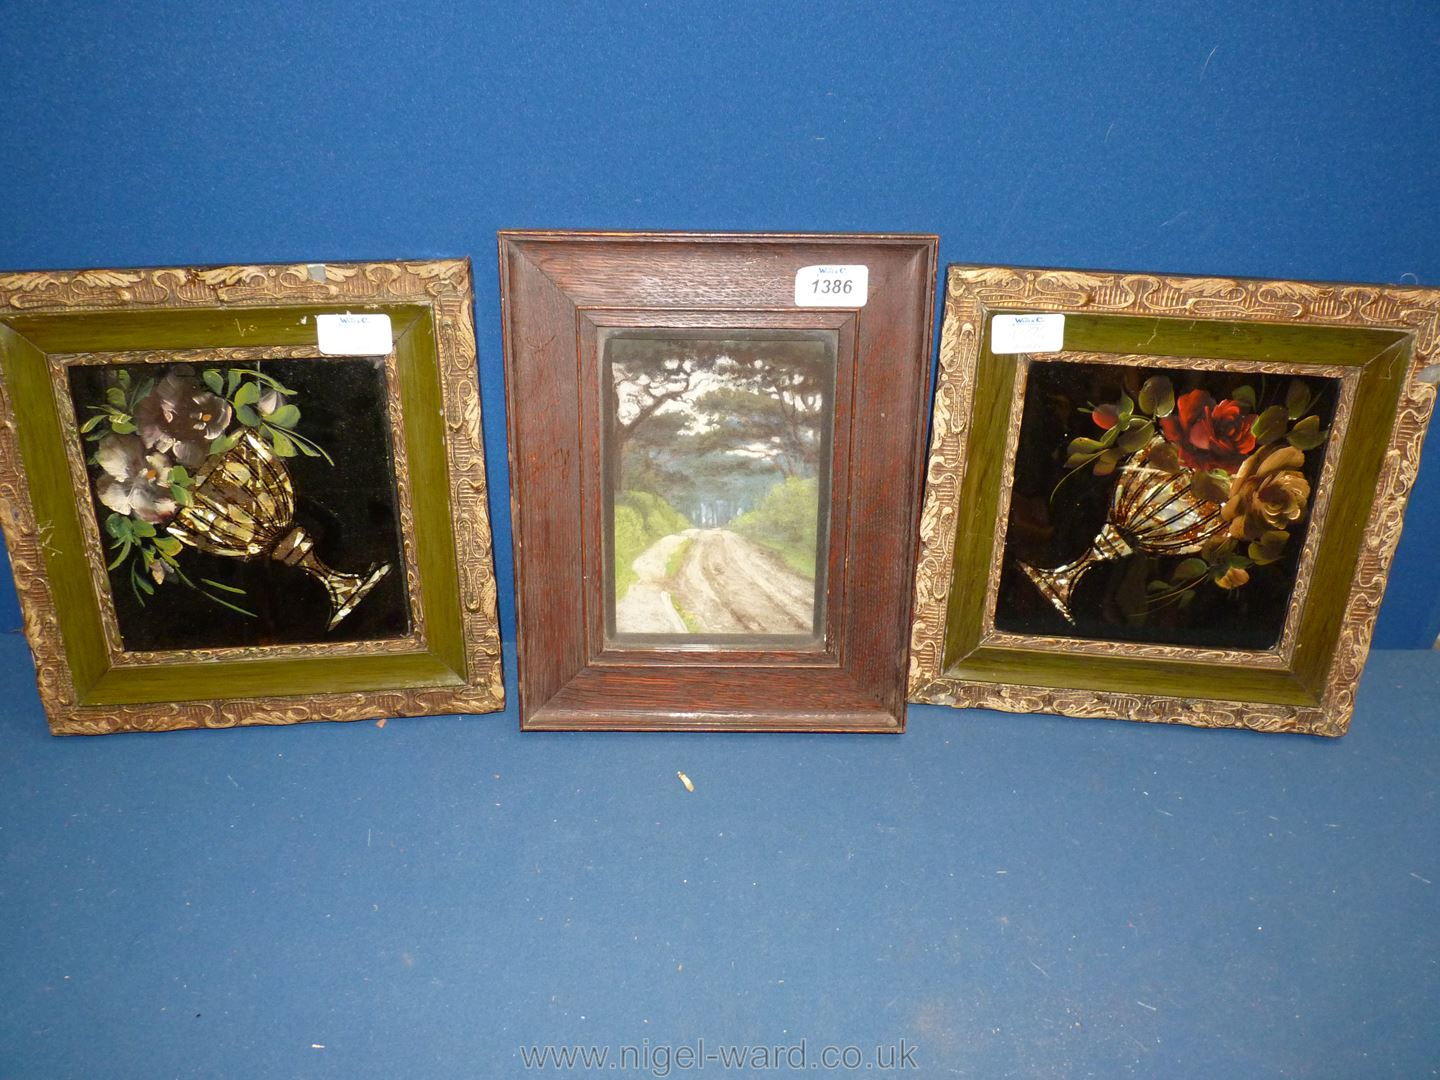 Two highly decorated picture frames having painting on glass pictures together with a Watercolour